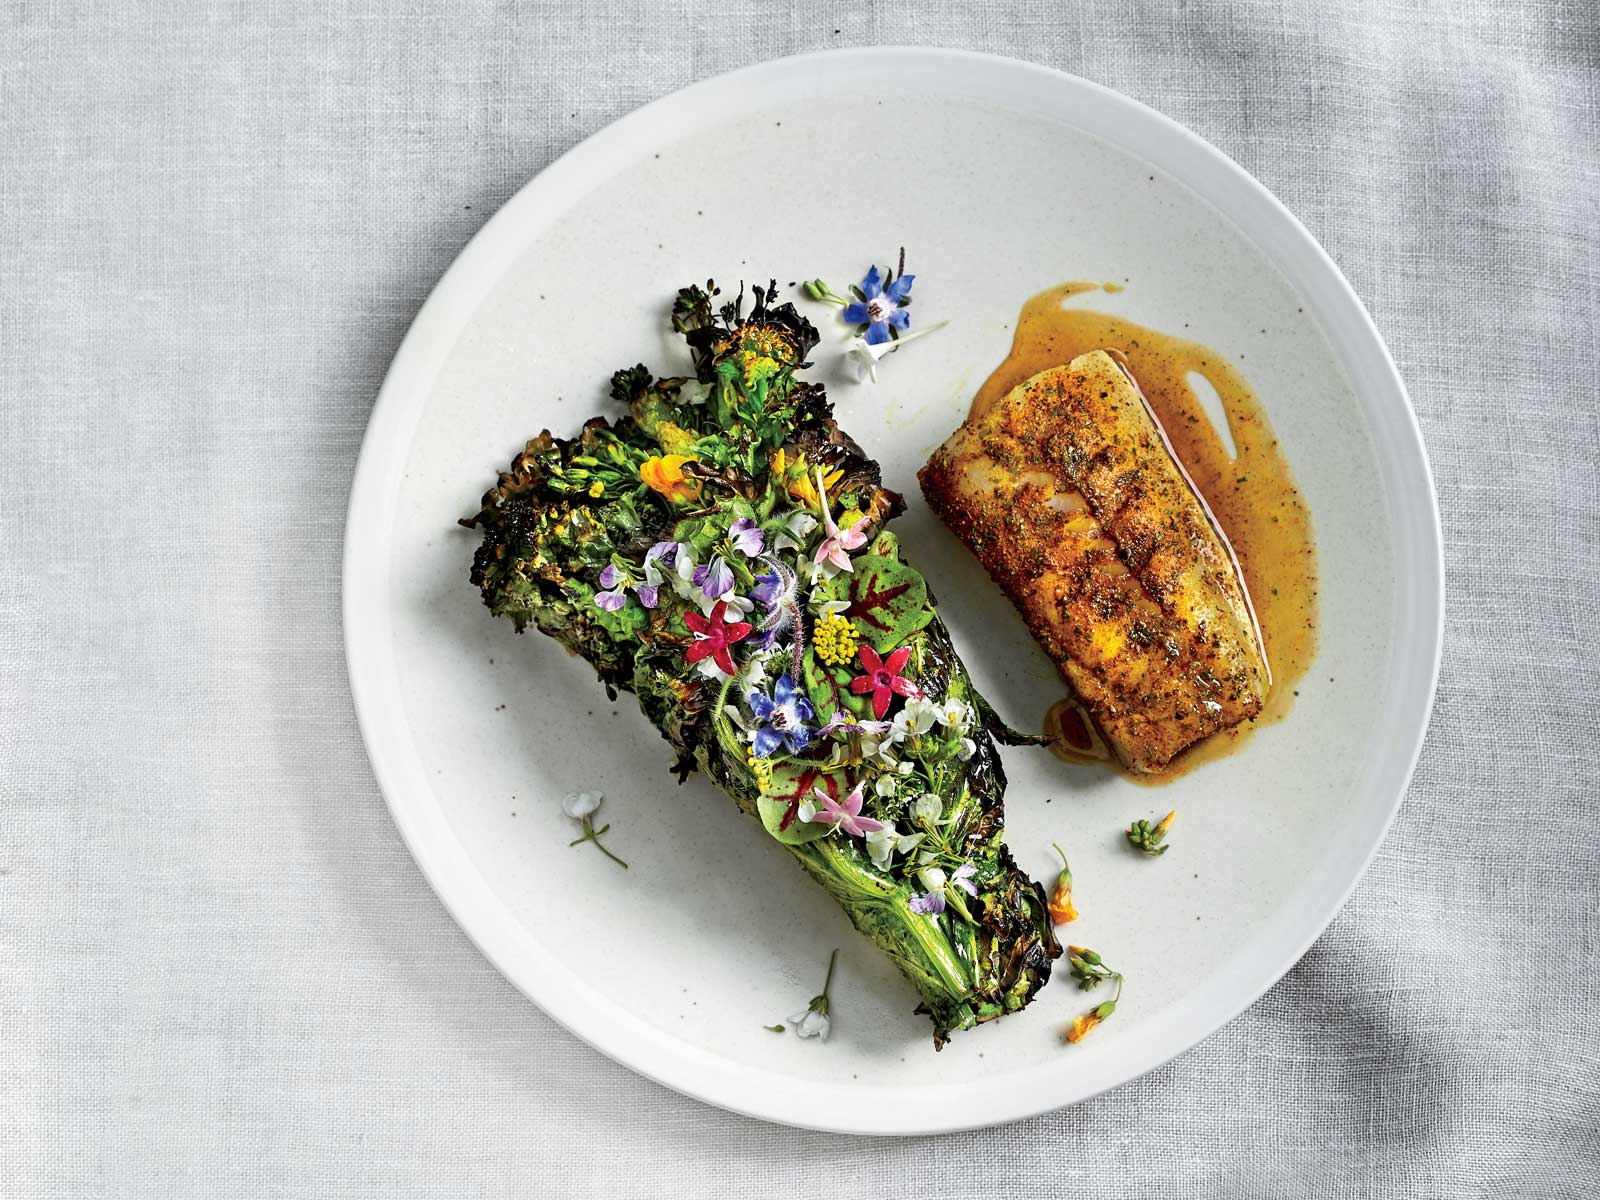 Grilled Black Cod and Herb Bundles with Elk Spice